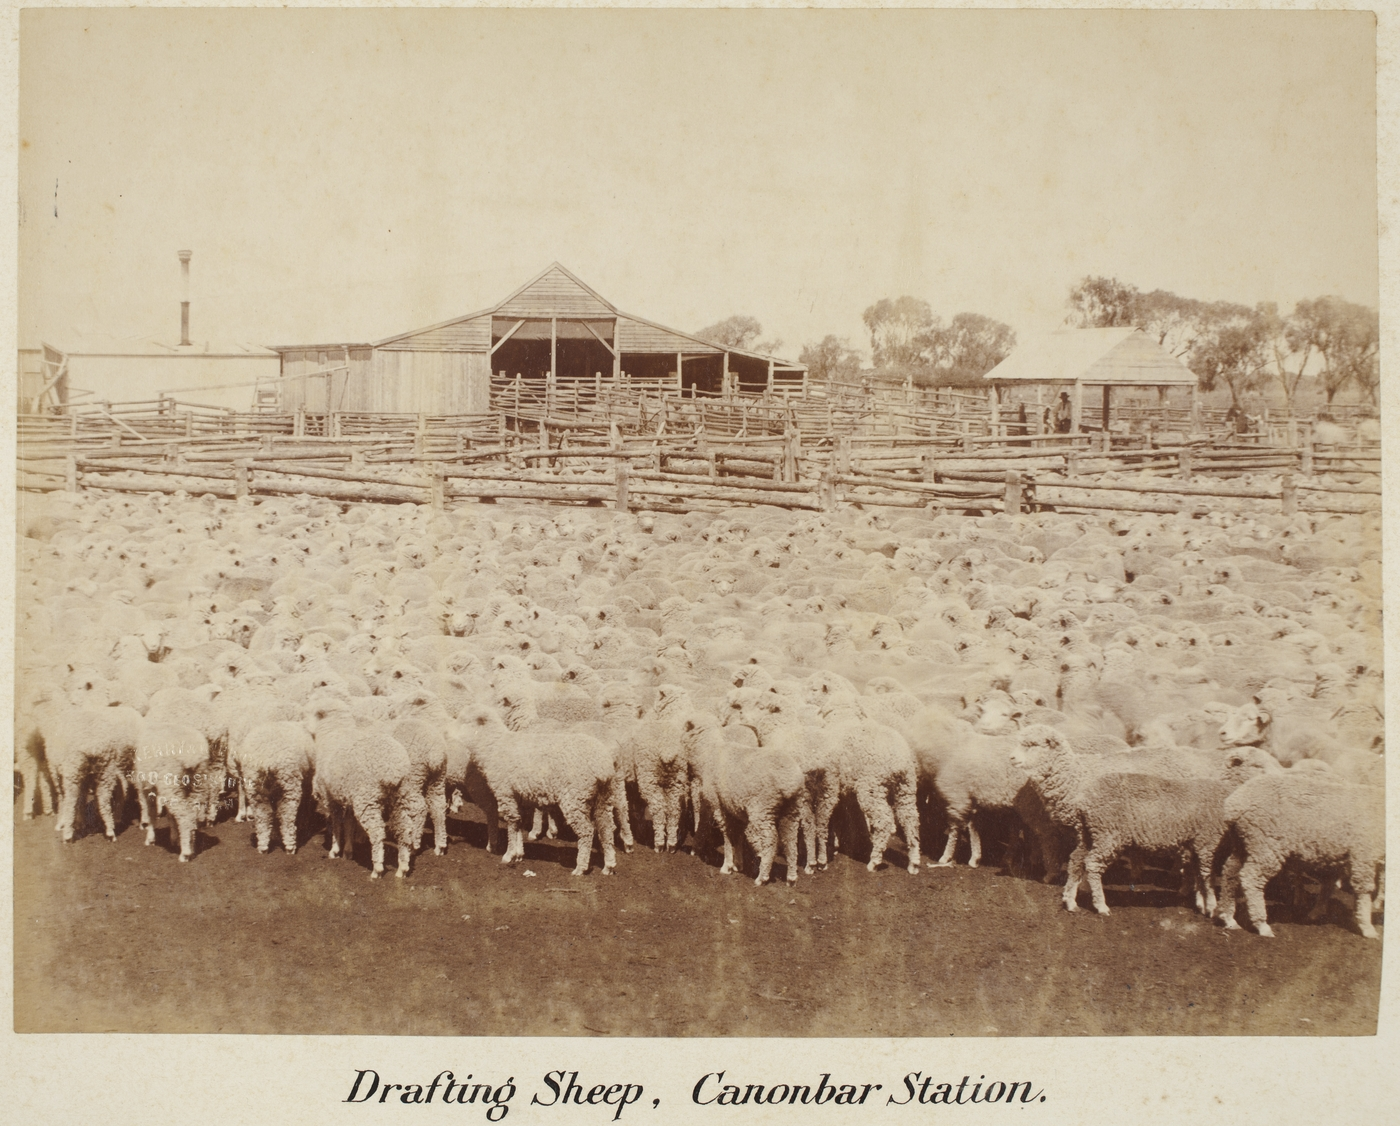 Station life | Australian agricultural and rural life